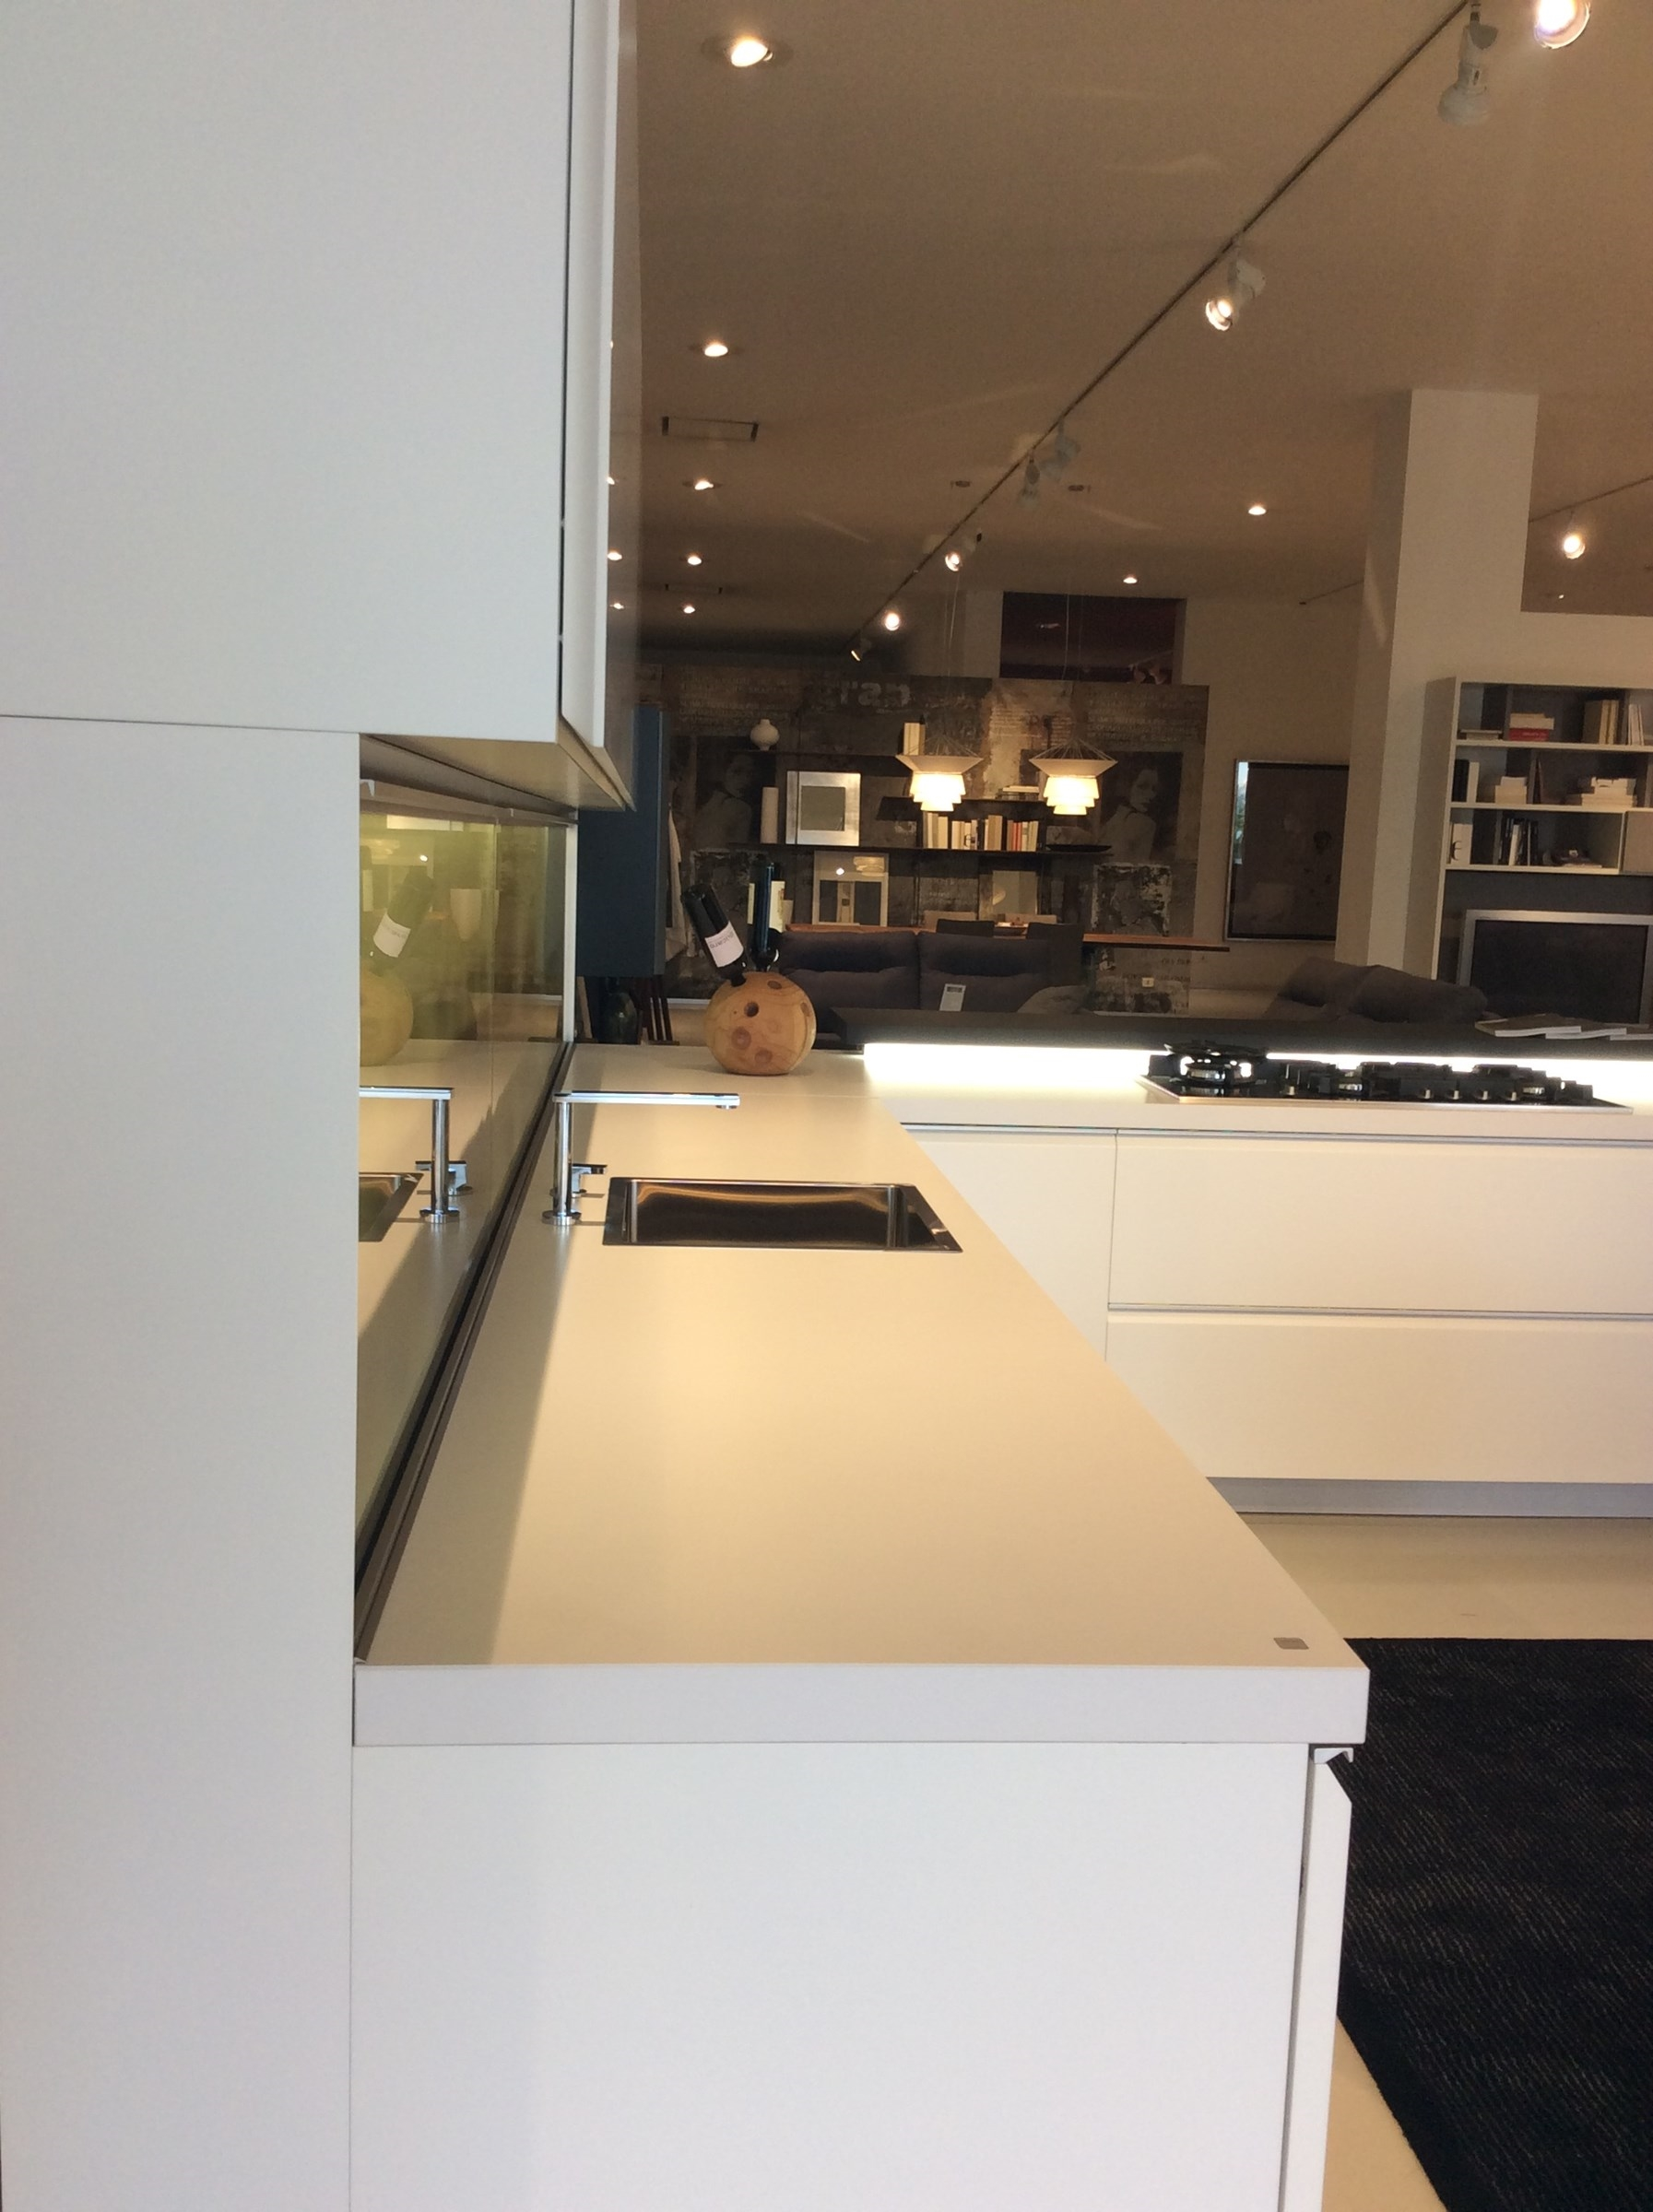 dada cucine outlet - 28 images - stunning dada cucine outlet ideas ...